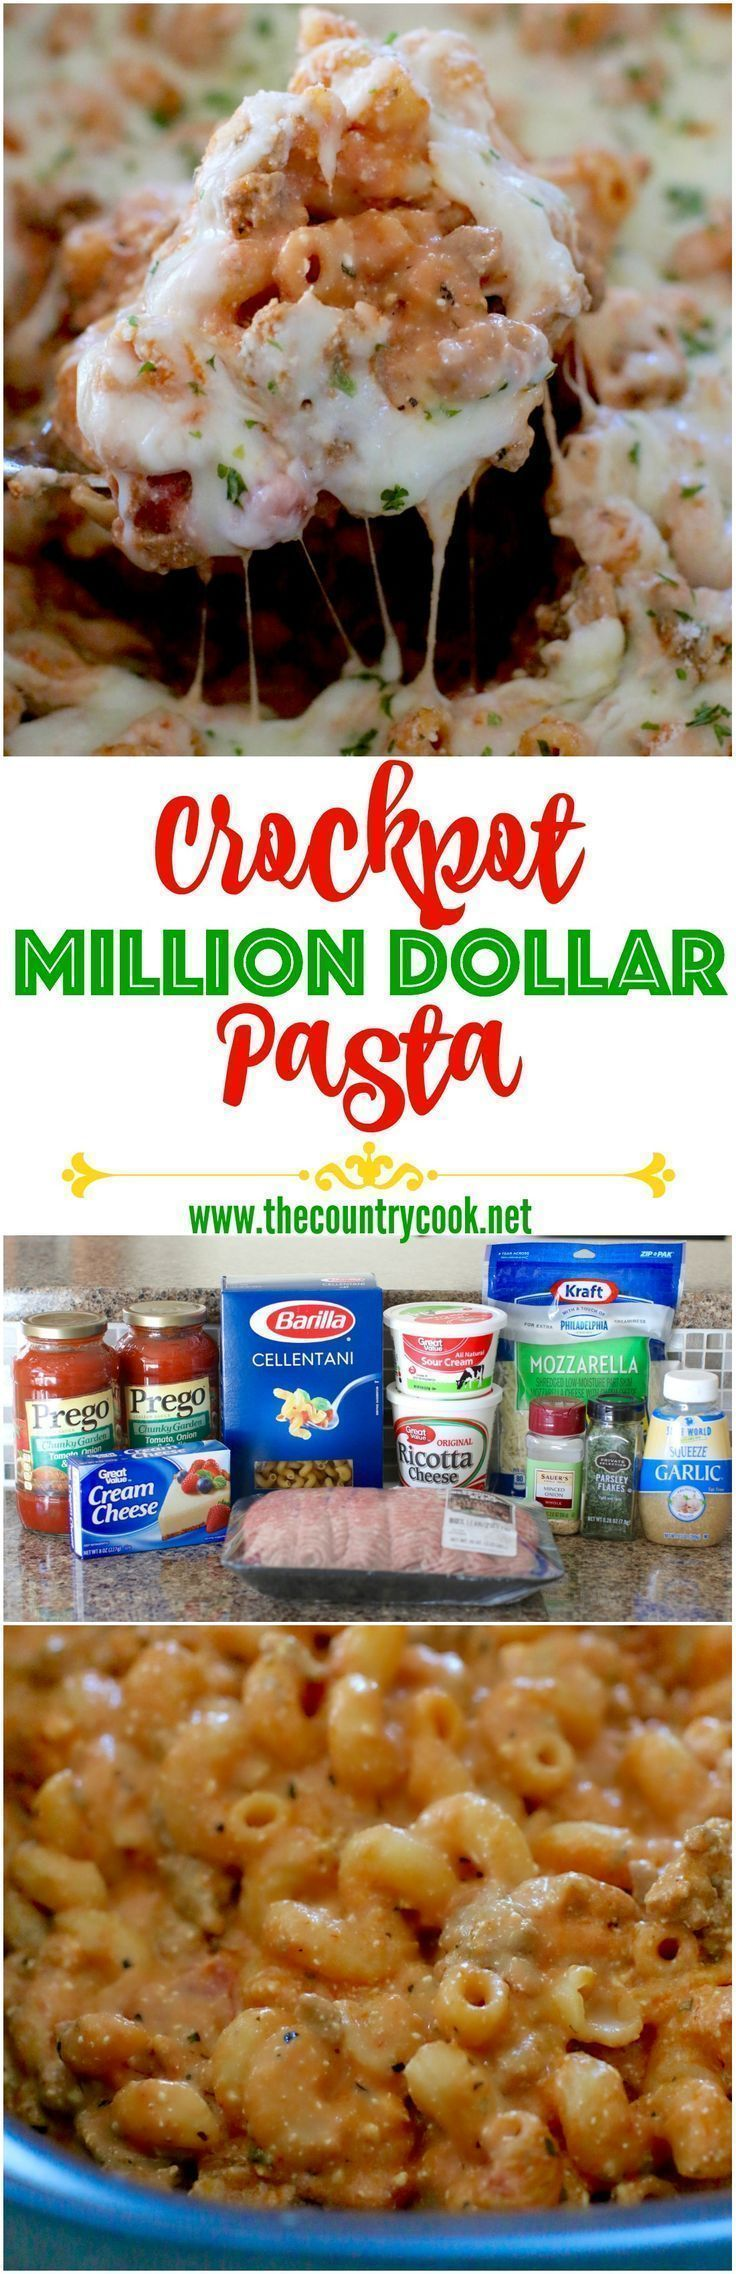 Crockpot Million Dollar Pasta recipe from The Country Cook. Creamy, flavorful pasta topped with hooey, gooey cheese! So easy too! We love to make a big batch of this and save leftovers for lunch & dinner during the week! #Glad2WasteLess #ad #crockpot #slowcooker #maindish #recipes